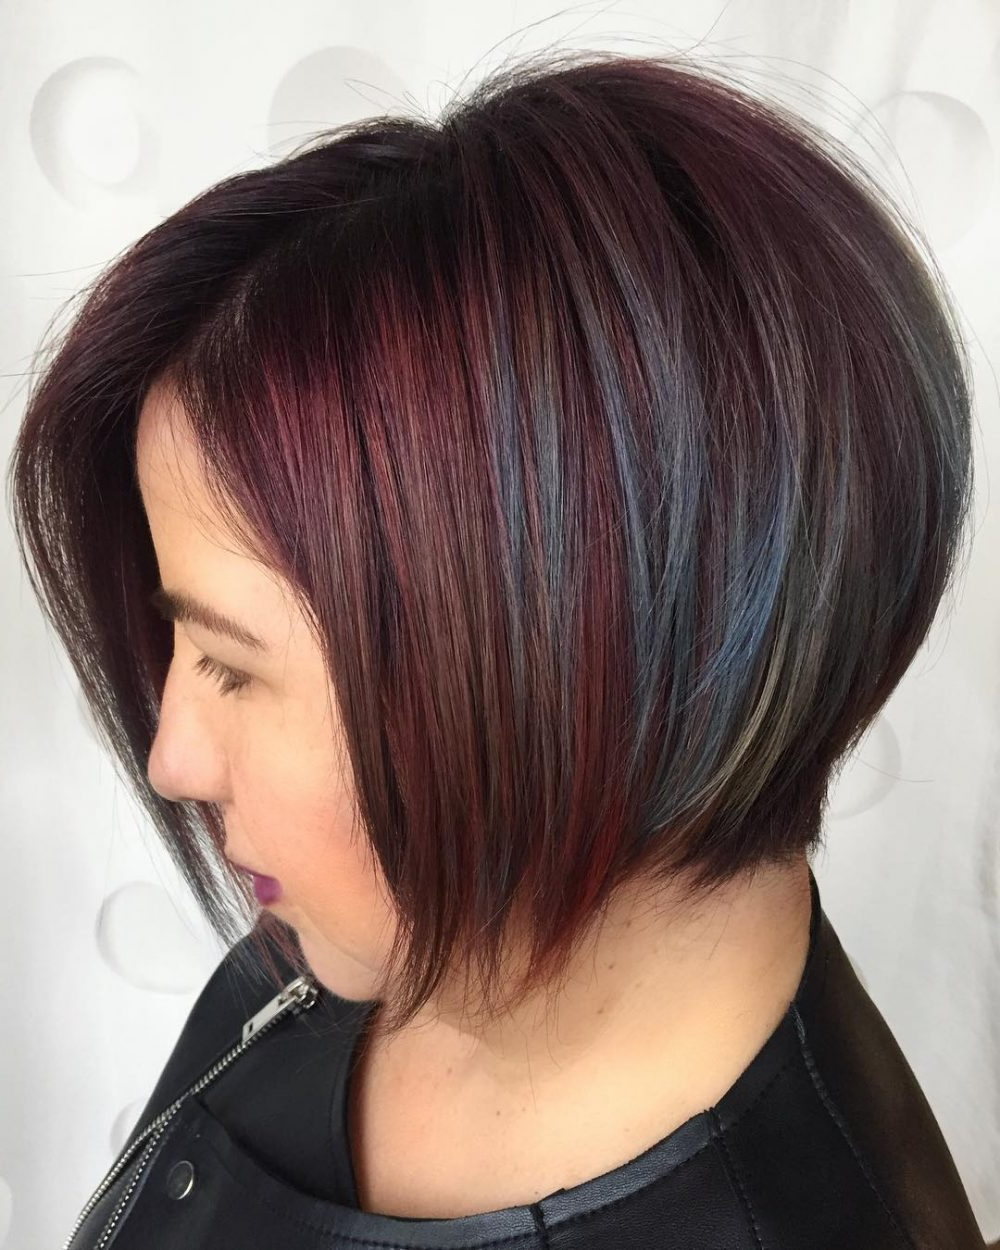 34 Greatest Short Haircuts And Hairstyles For Thick Hair For 2018 Regarding Sassy Short Haircuts For Thick Hair (View 12 of 25)